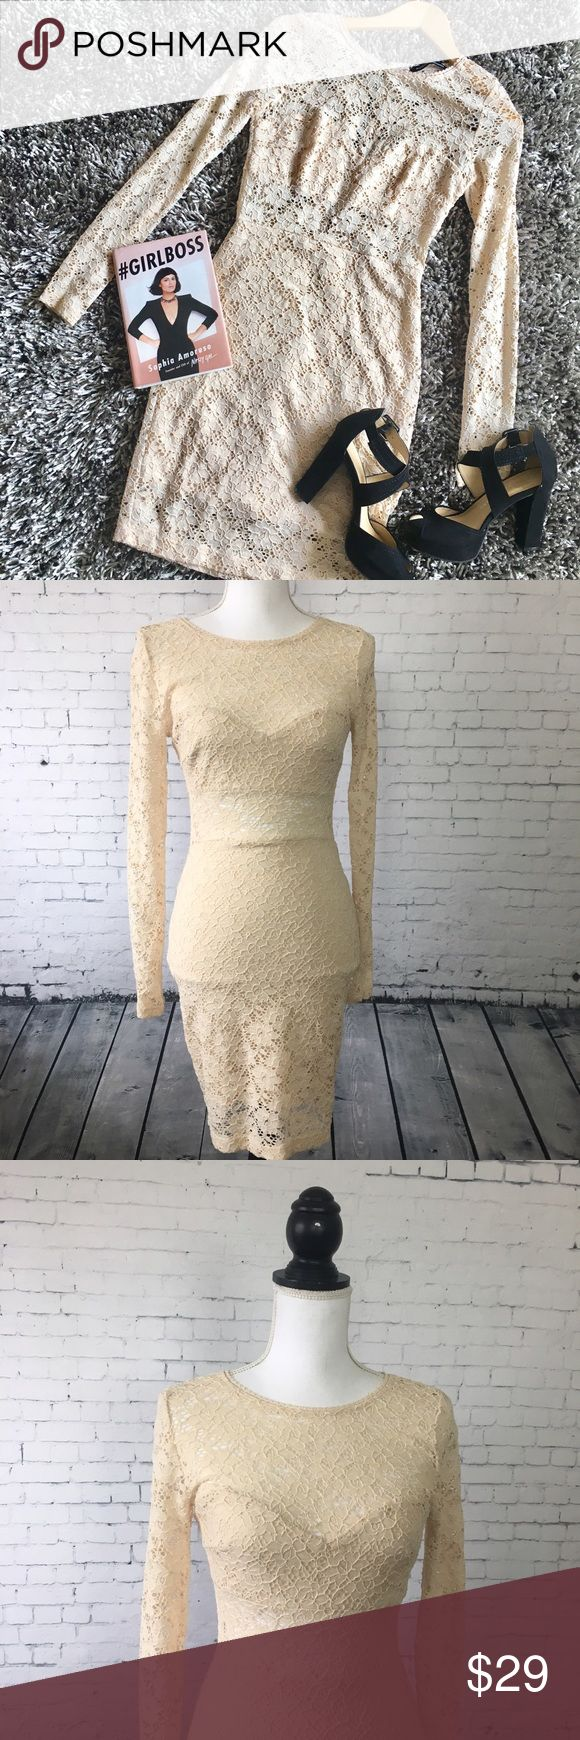 """Foreign Exchange Lace Bodycon Dress Sexy and sweet lace bodycon dress from Foreign Exchange. Warm cream color with contrasting black zipper. Sheer on the sleeves and midsection for a little peek-a-boo style. Wear with black heels and your favorite bag for a night out. Nylon, spared and polyester. Size M. Approx 36"""" long. Excellent condition. Foreign Exchange Dresses Long Sleeve"""